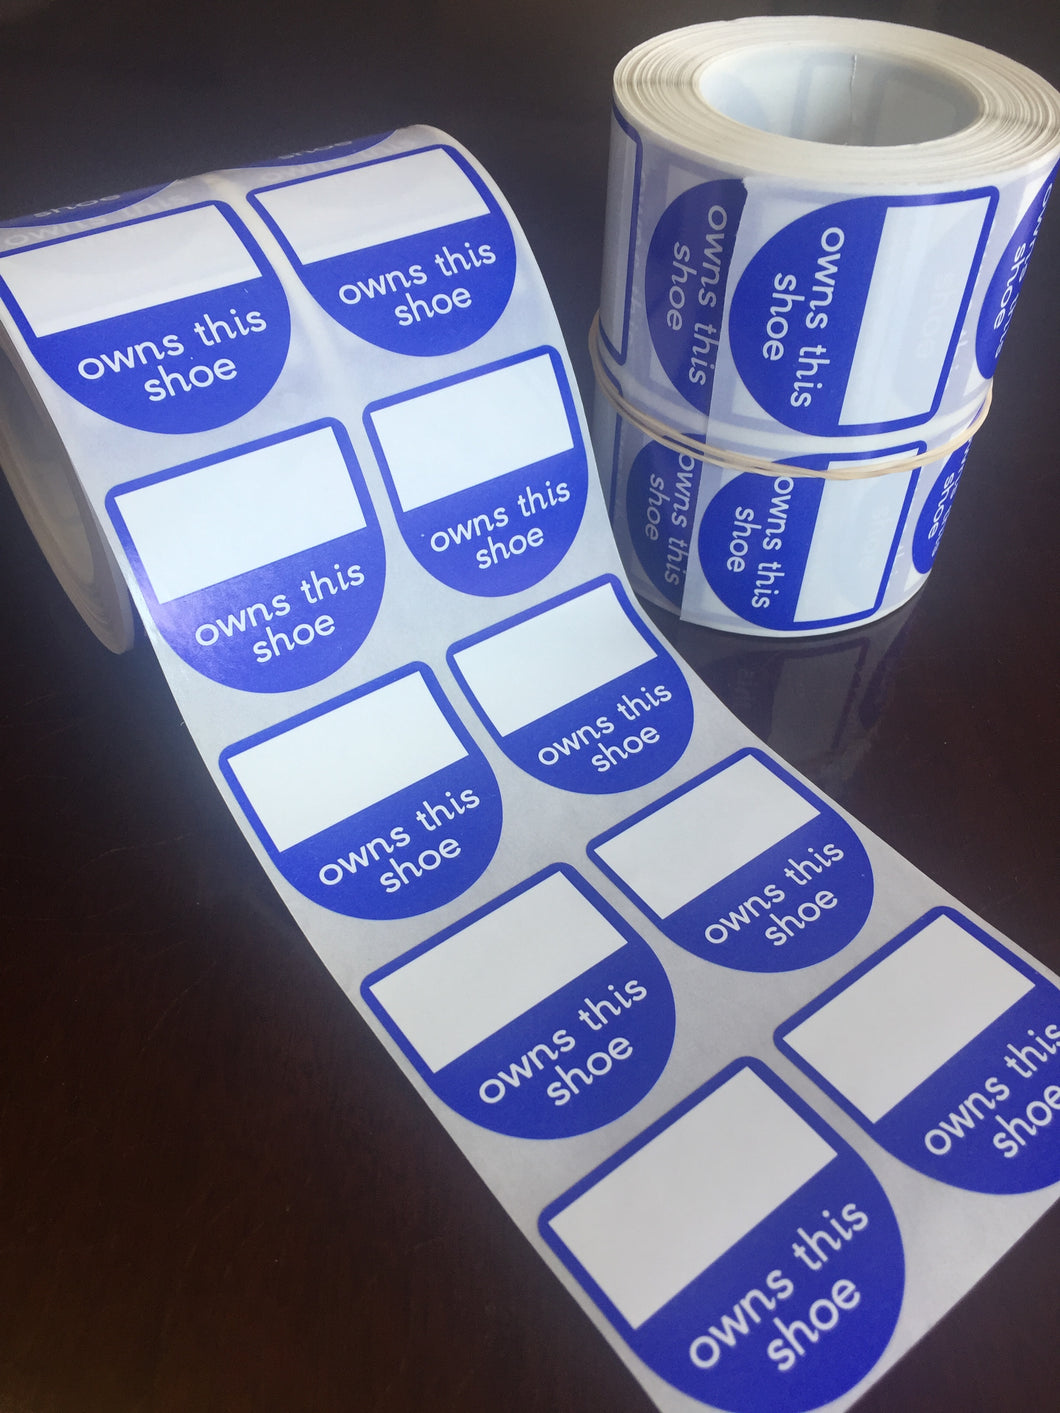 Blue Shoe labels